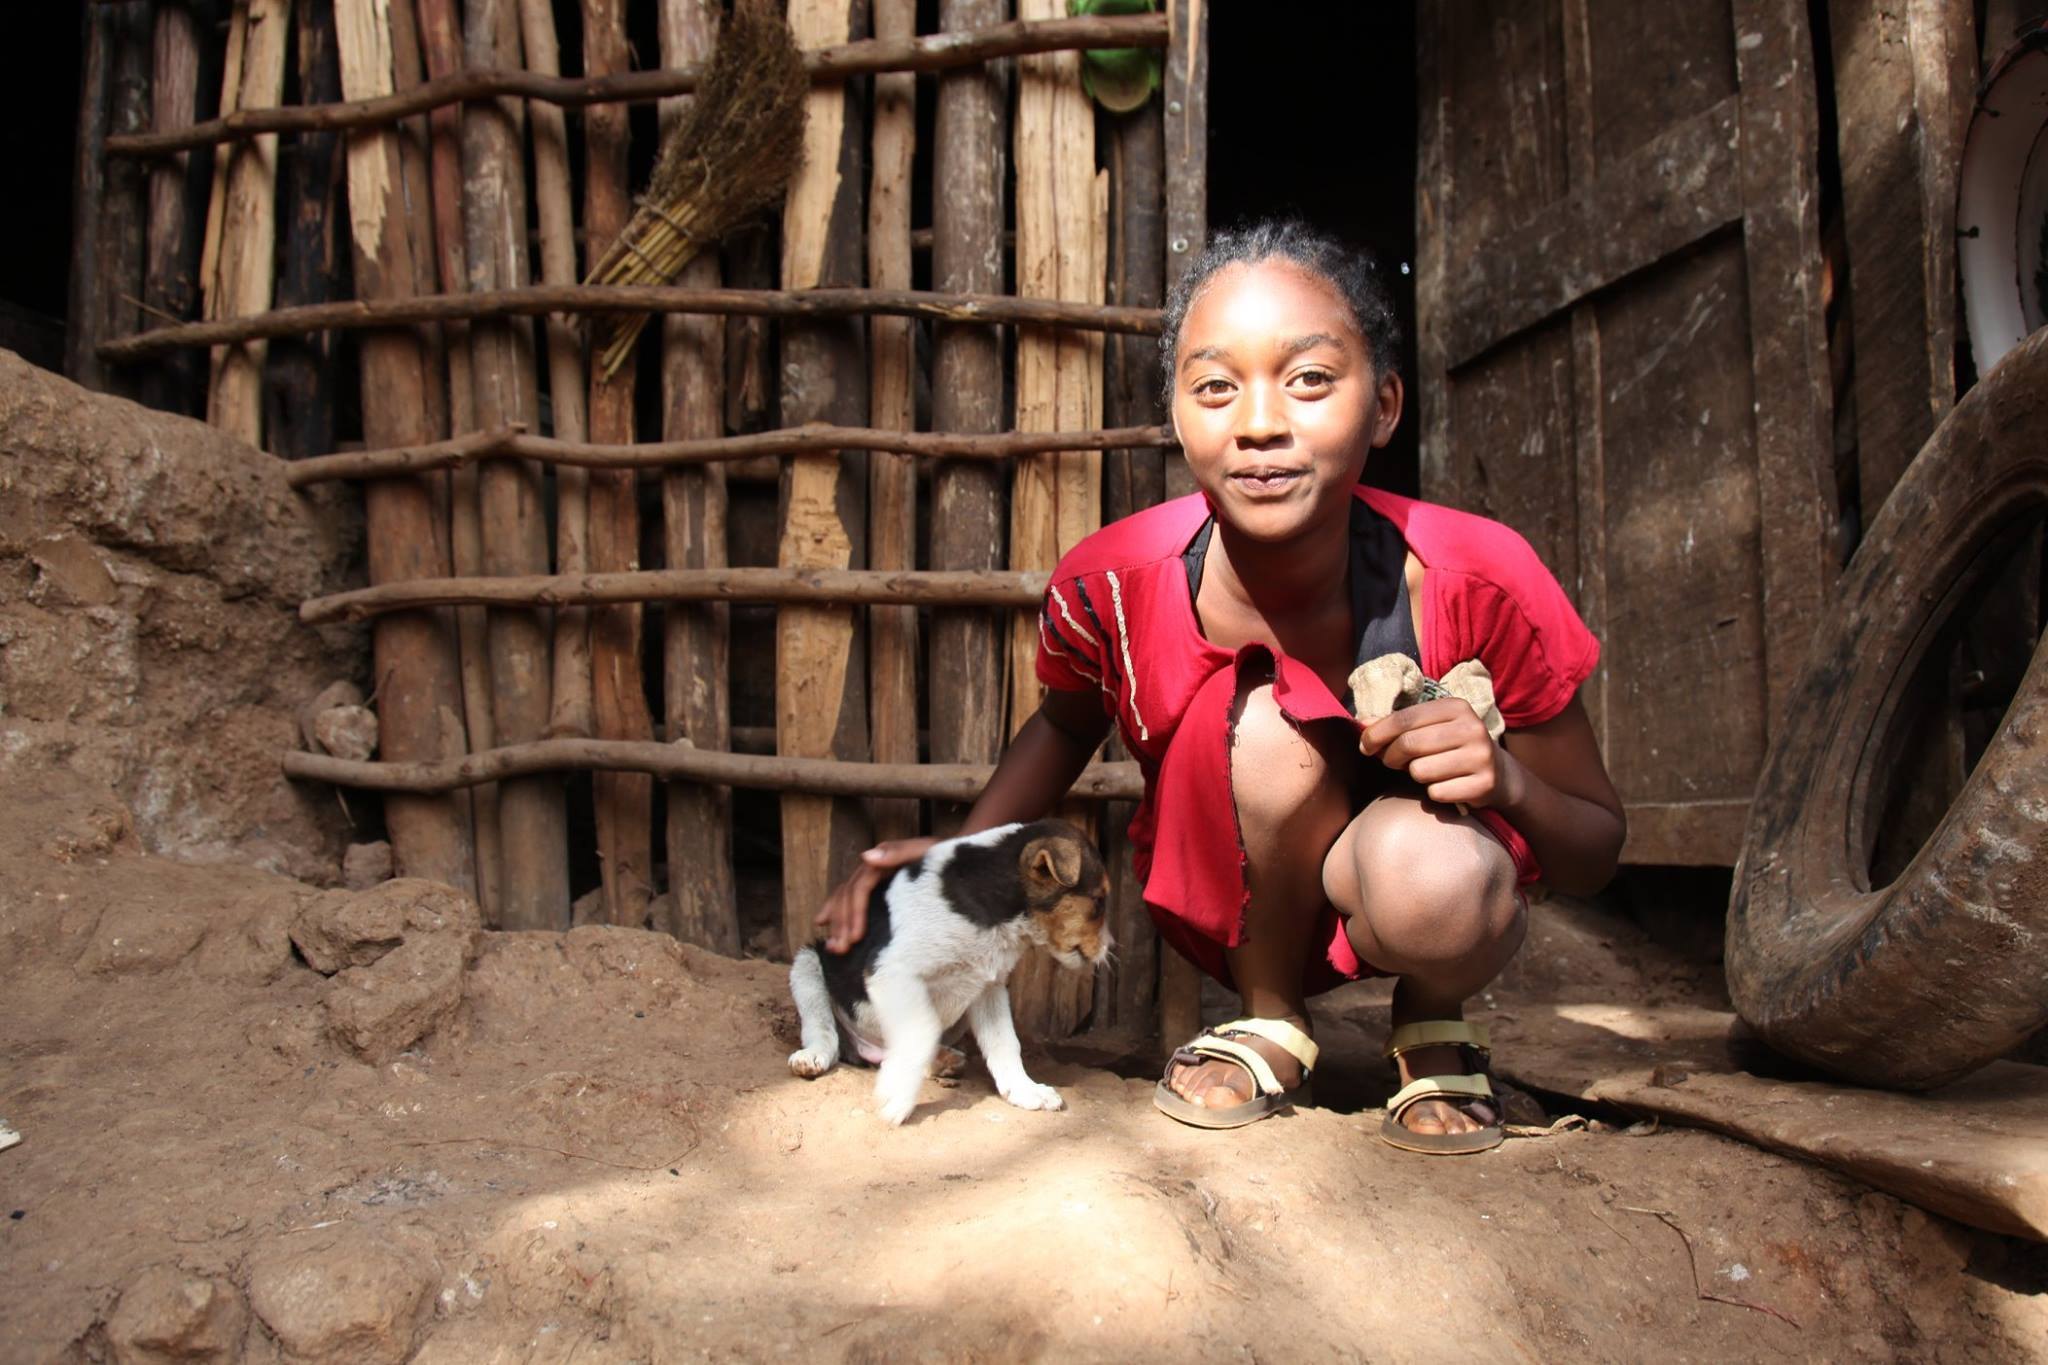 GGRF Athletic Scholar Firehiwote and her new puppy at her home in Sodo, Ethiopia.